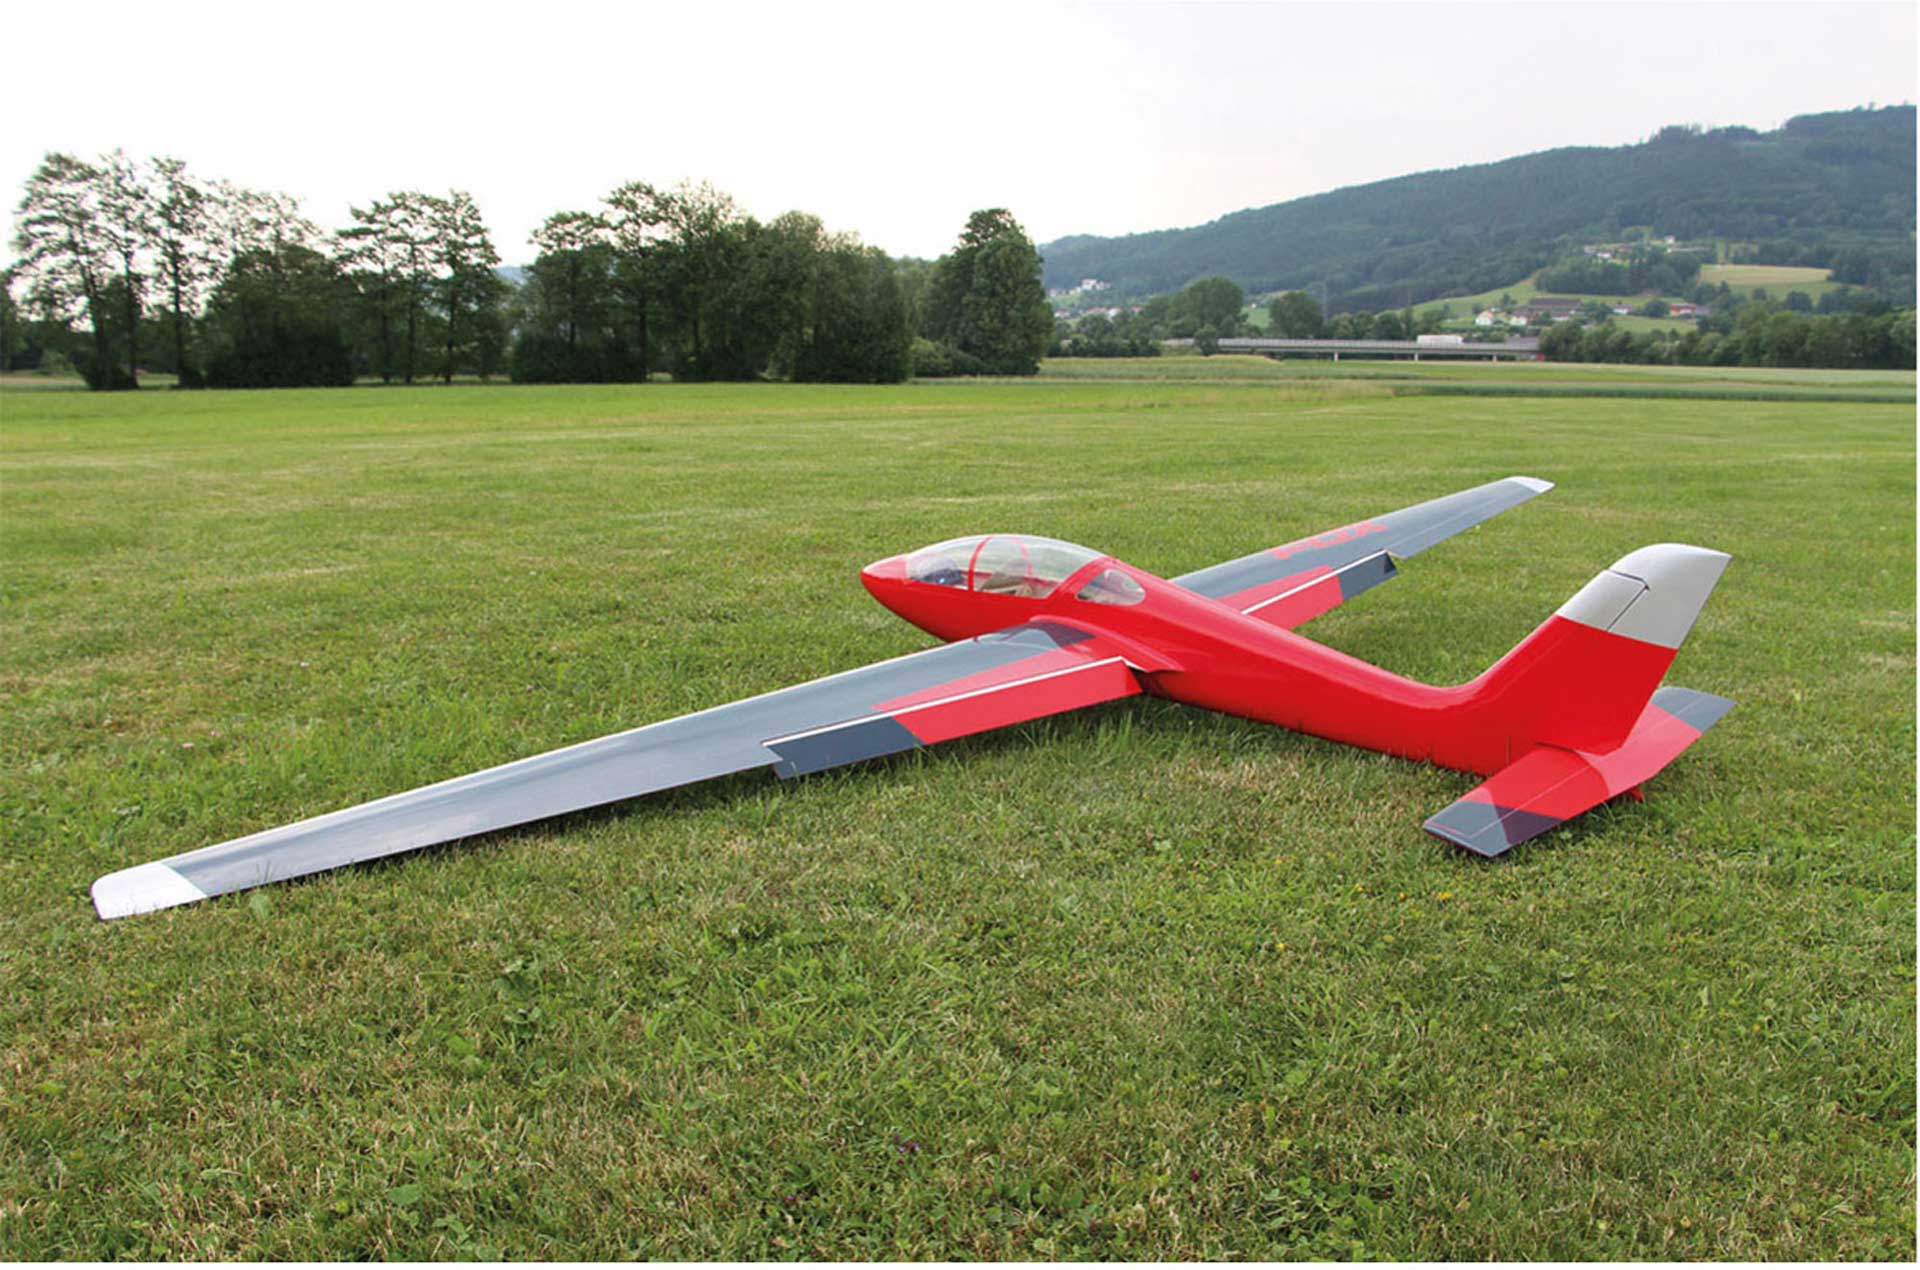 ROBBE MDM-1 FOX 3.5 M FULL COMPOSITE PNP ACROBATIC ELECTRIC GLIDER